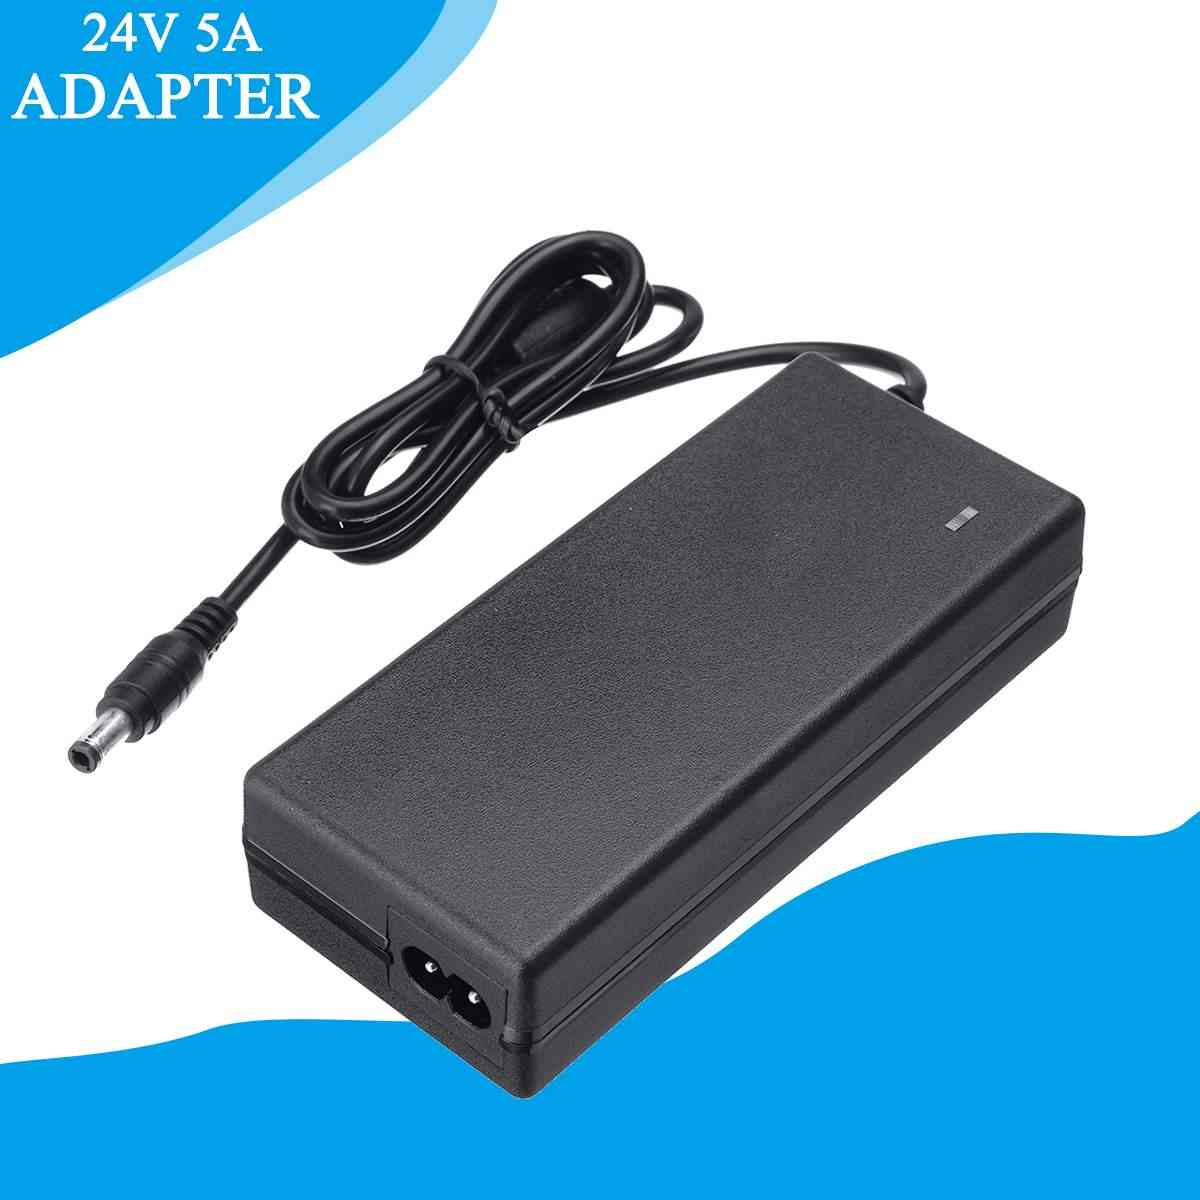 LEORY 24V 5A Power Lead-Acid Battery Adapter For Mobility Electric Scooter Wheelchair Golf Cart Battery Charger Smart Charger